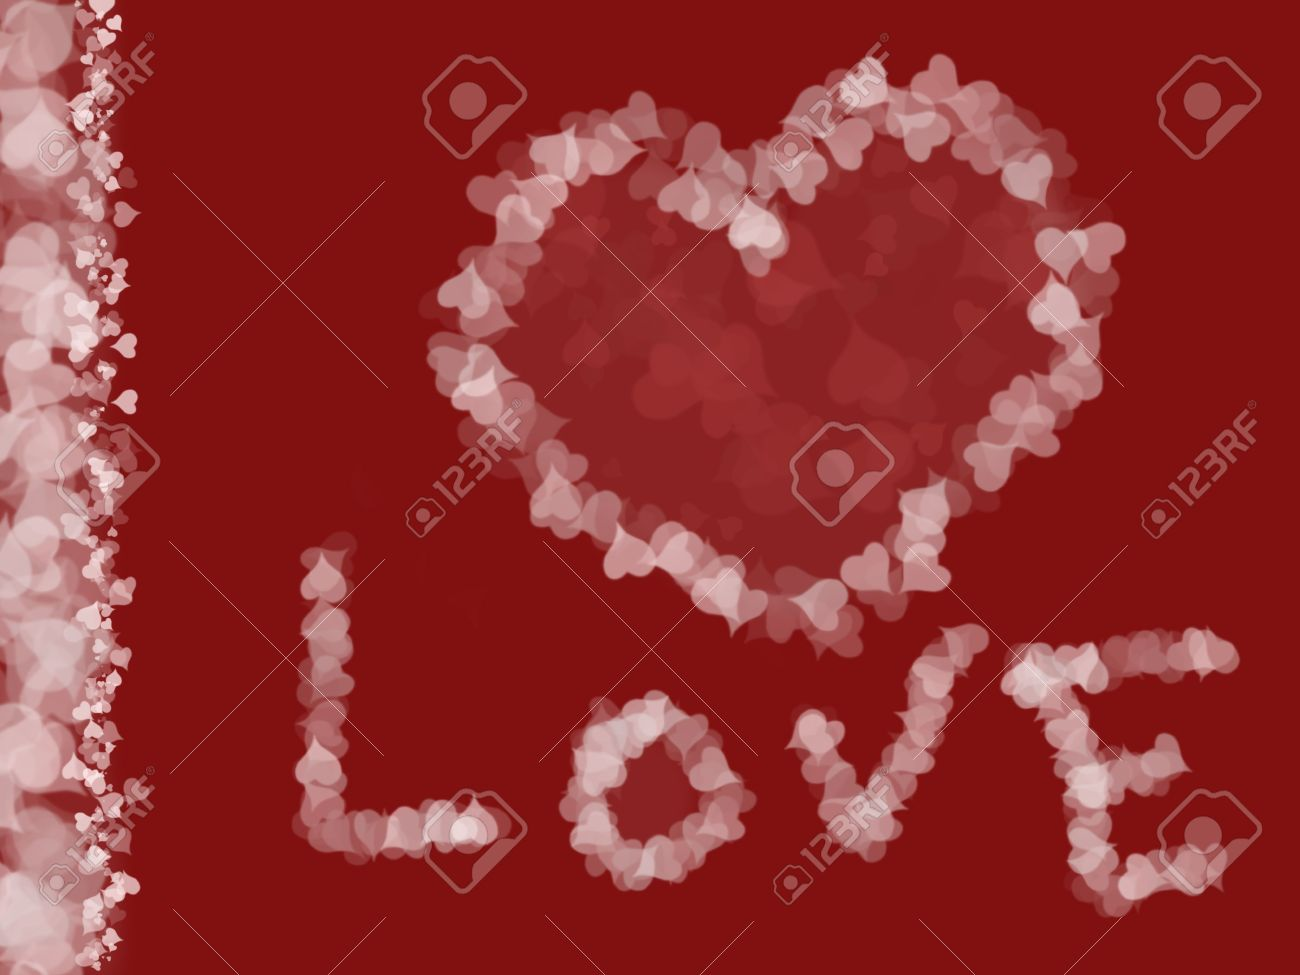 Illustration of hearts, love background with vertical frame made of hearts, Valentine's day, romantic/love themed image Stock Illustration - 2571688